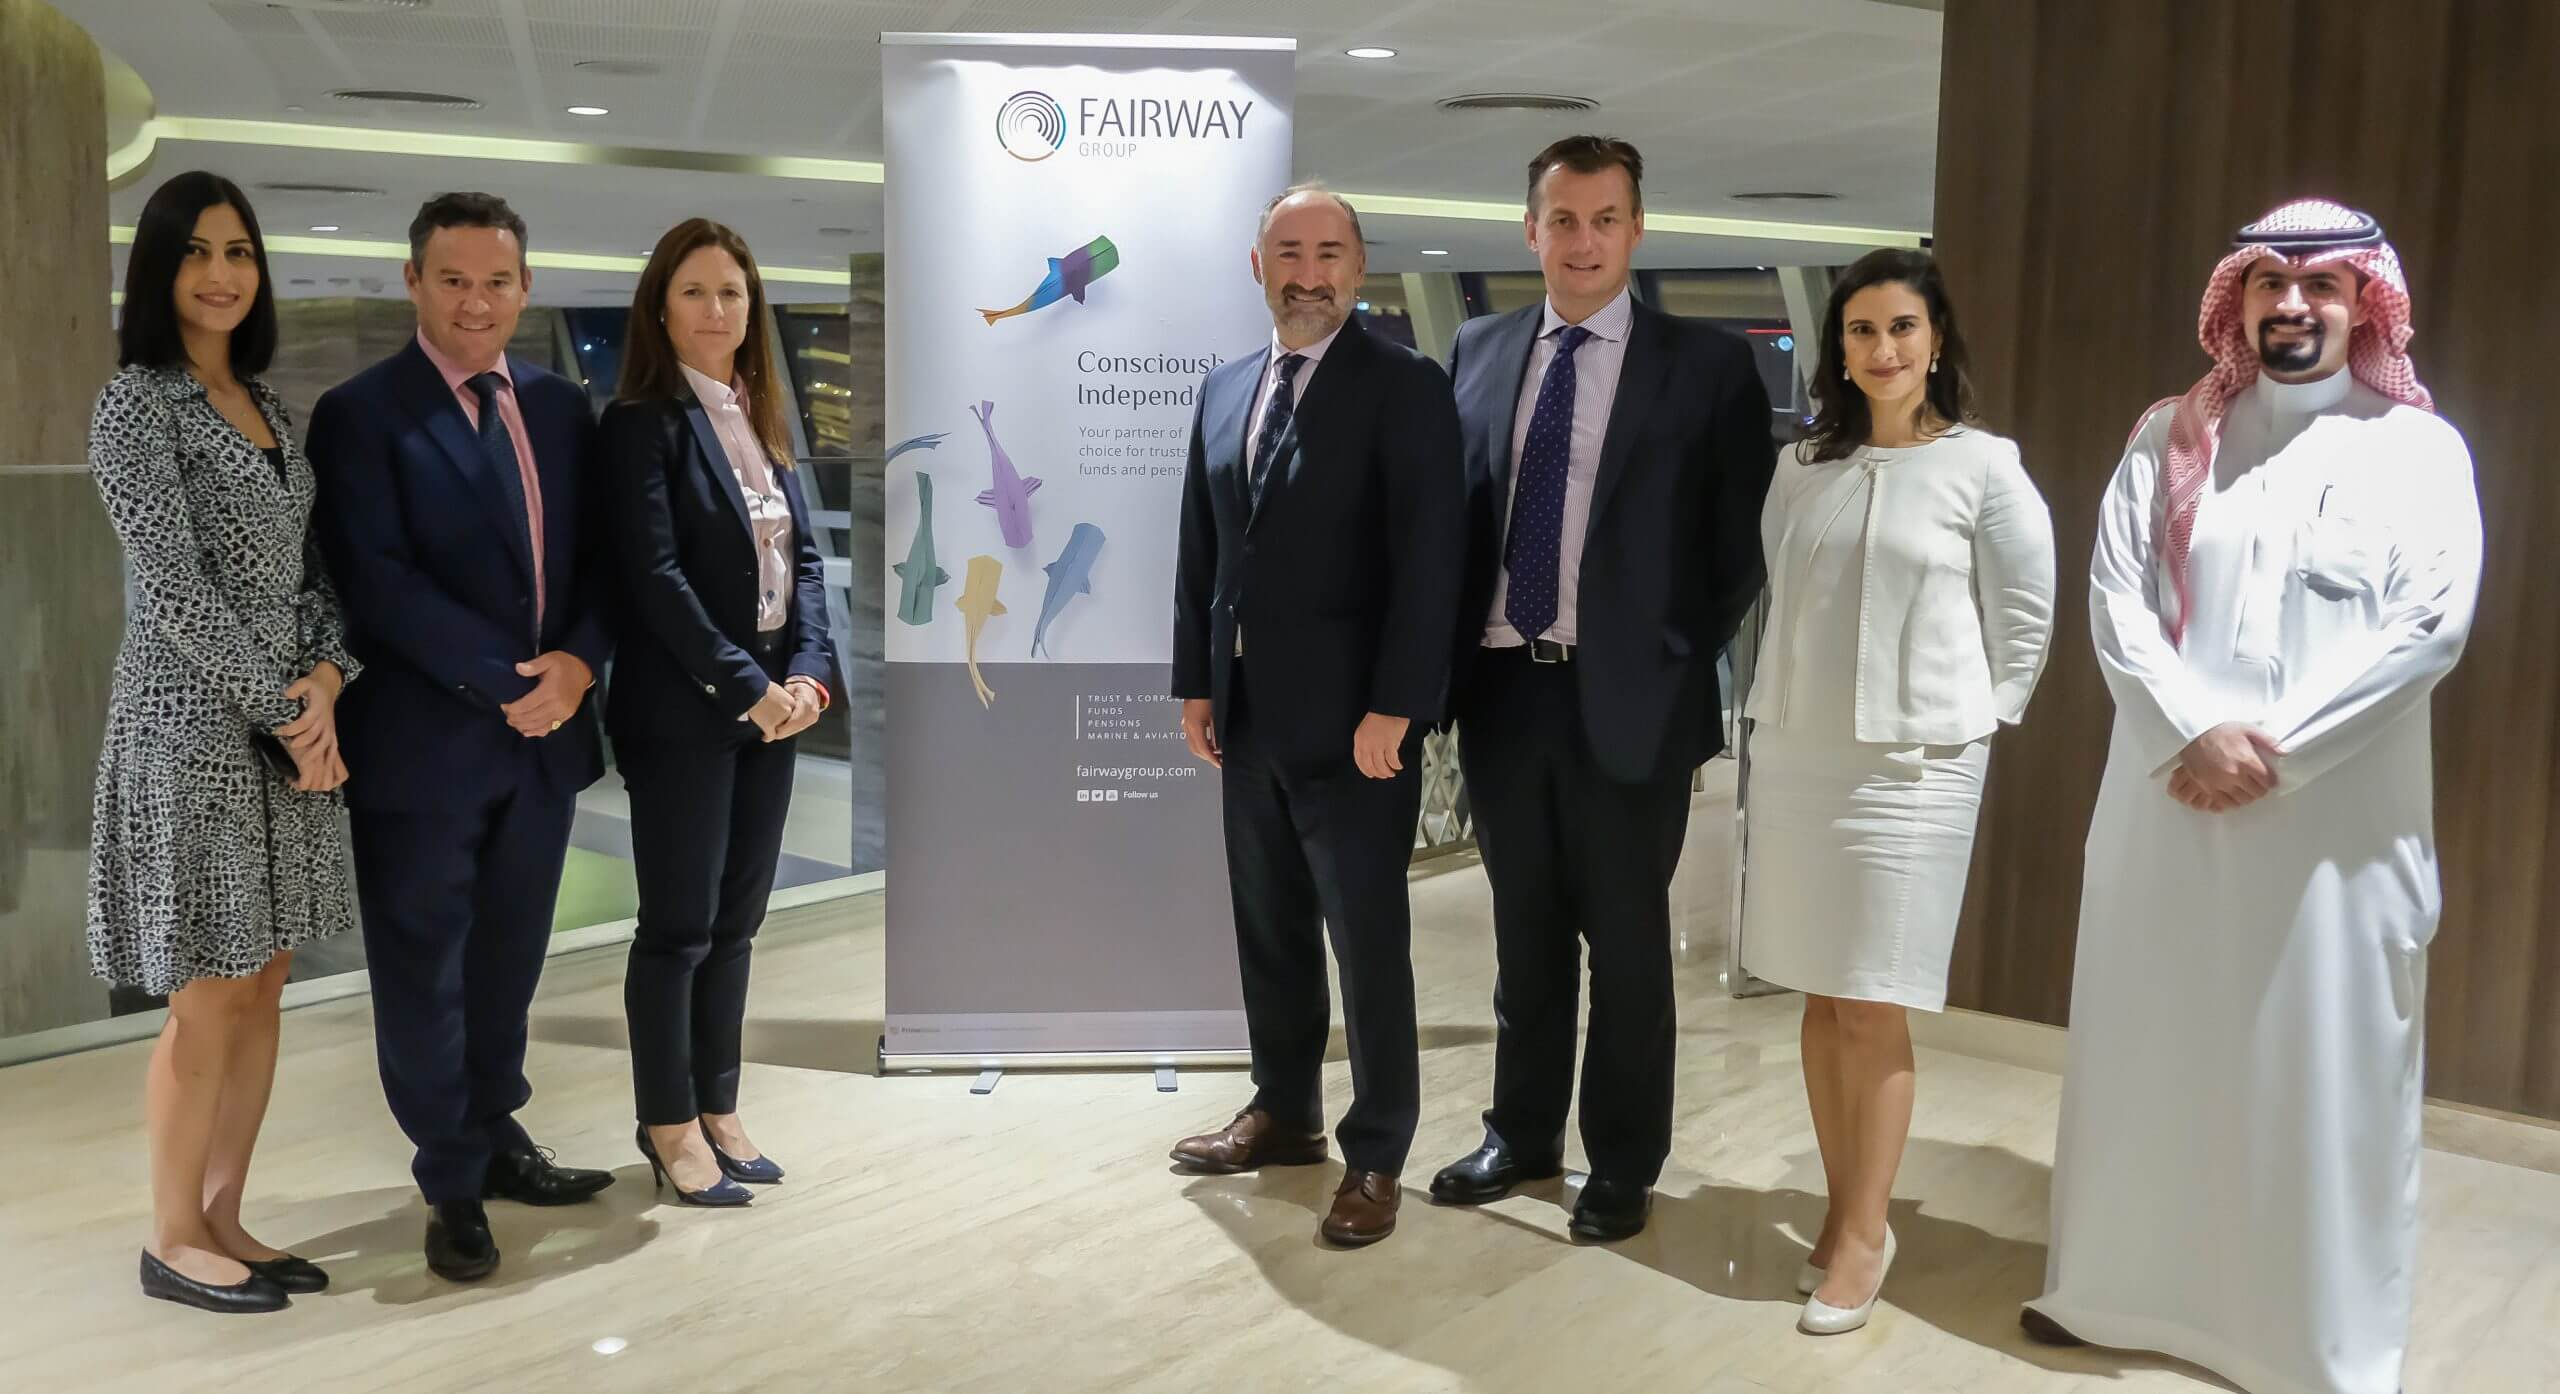 Fairway Group begins international expansion with Bahrain launch